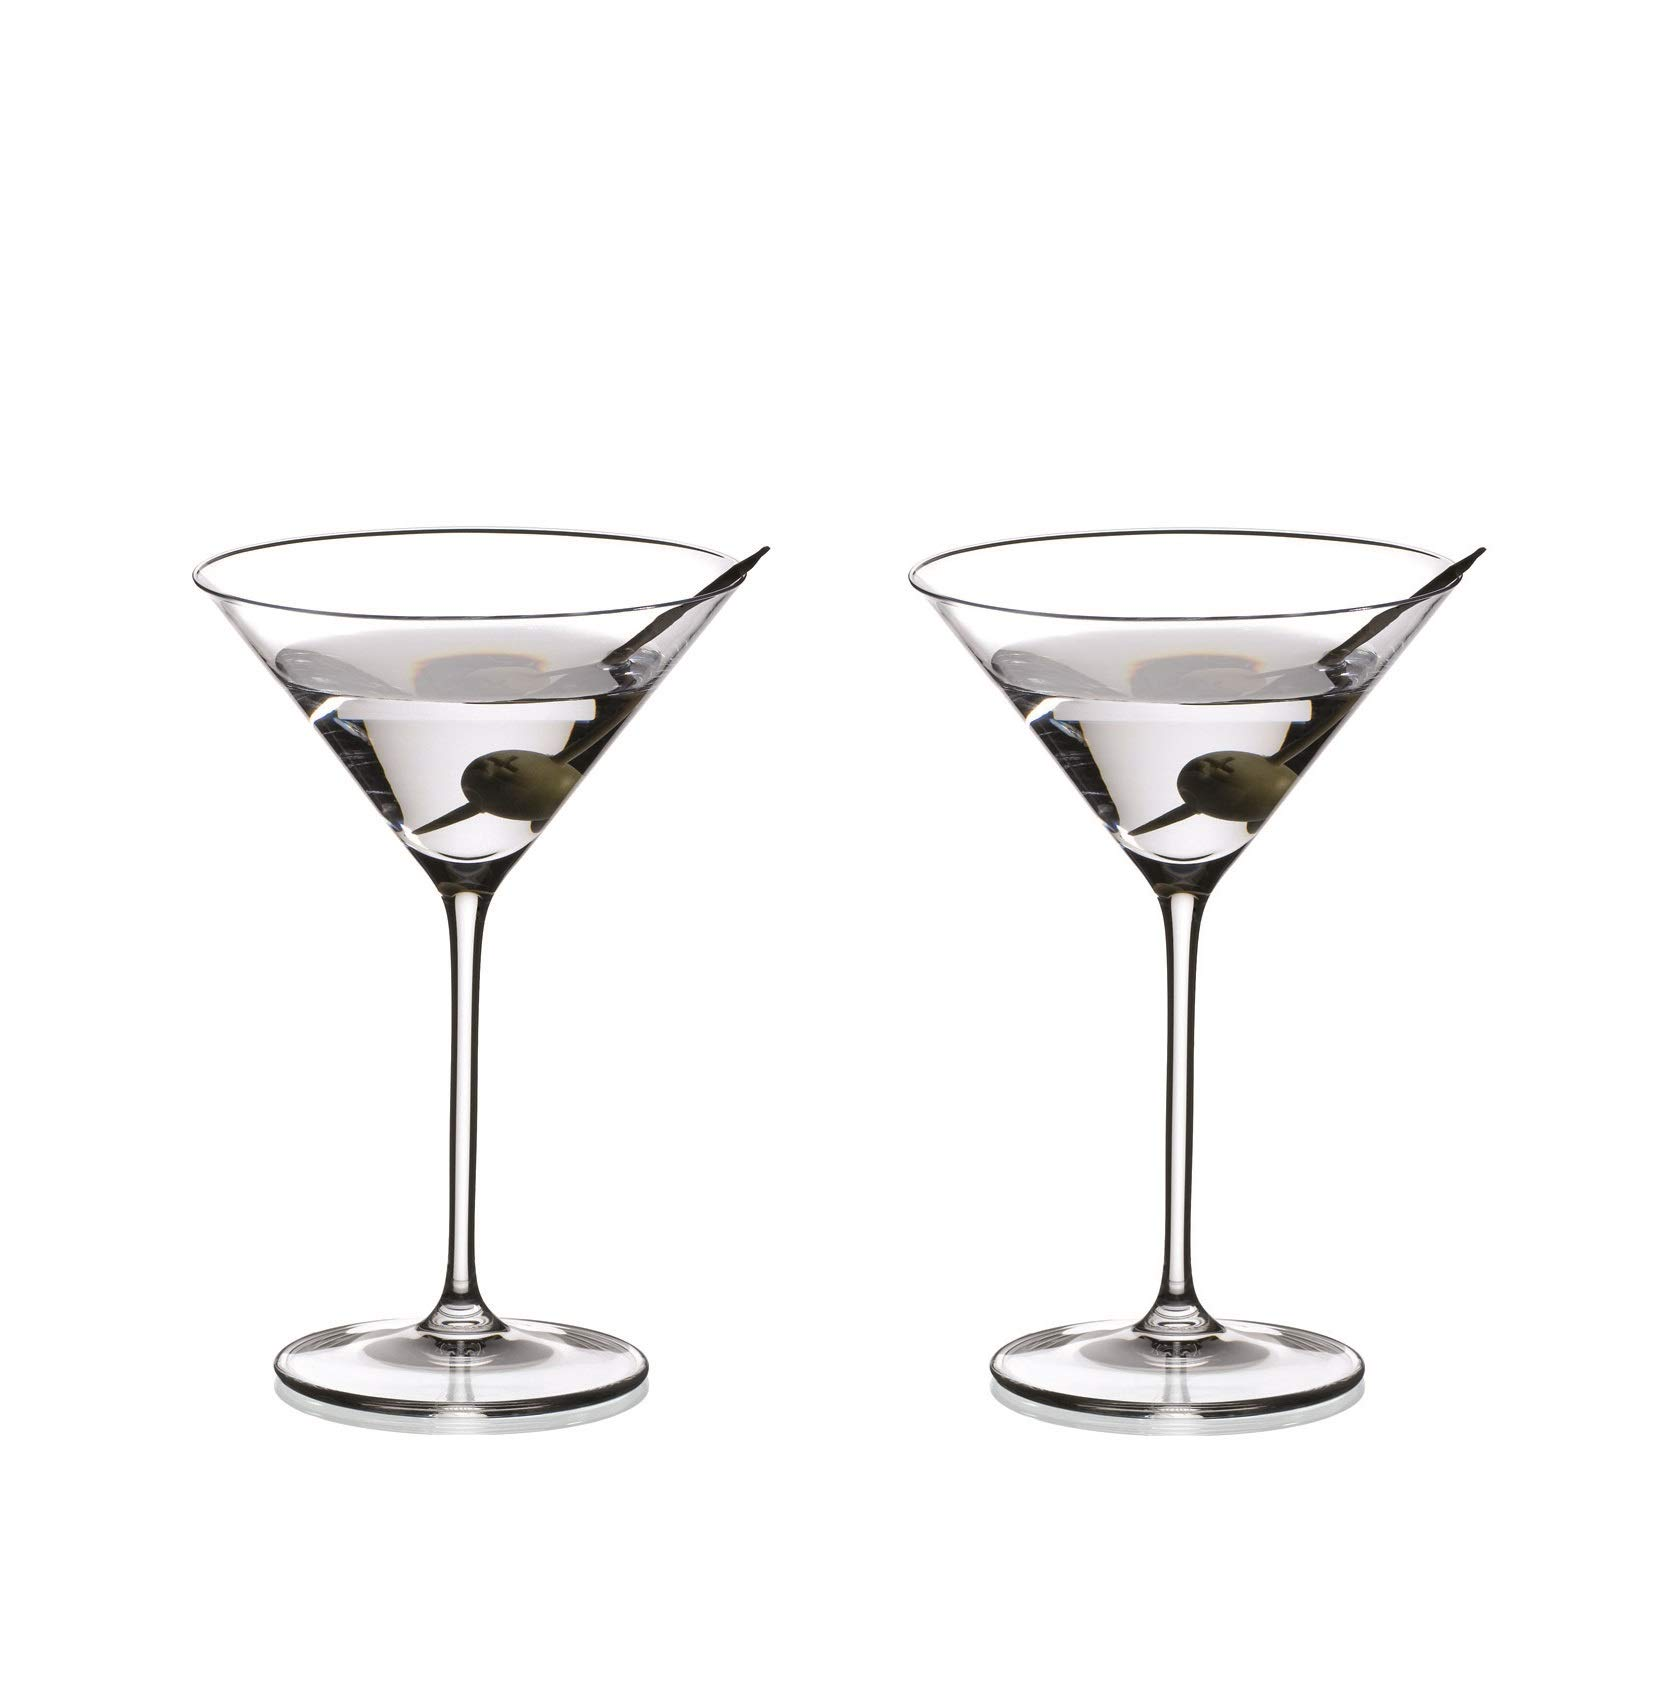 Riedel Vinum XL Martini Glasses, Set of 2